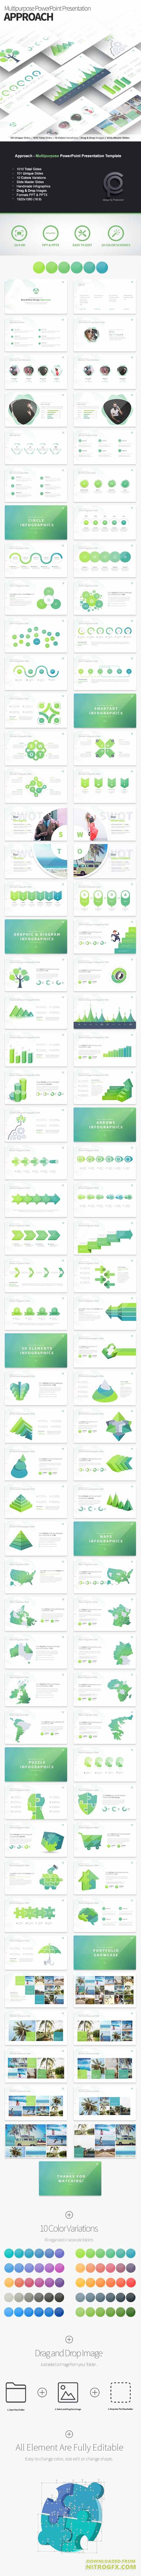 Approach - Multipurpose PowerPoint Presentation Template 20415265